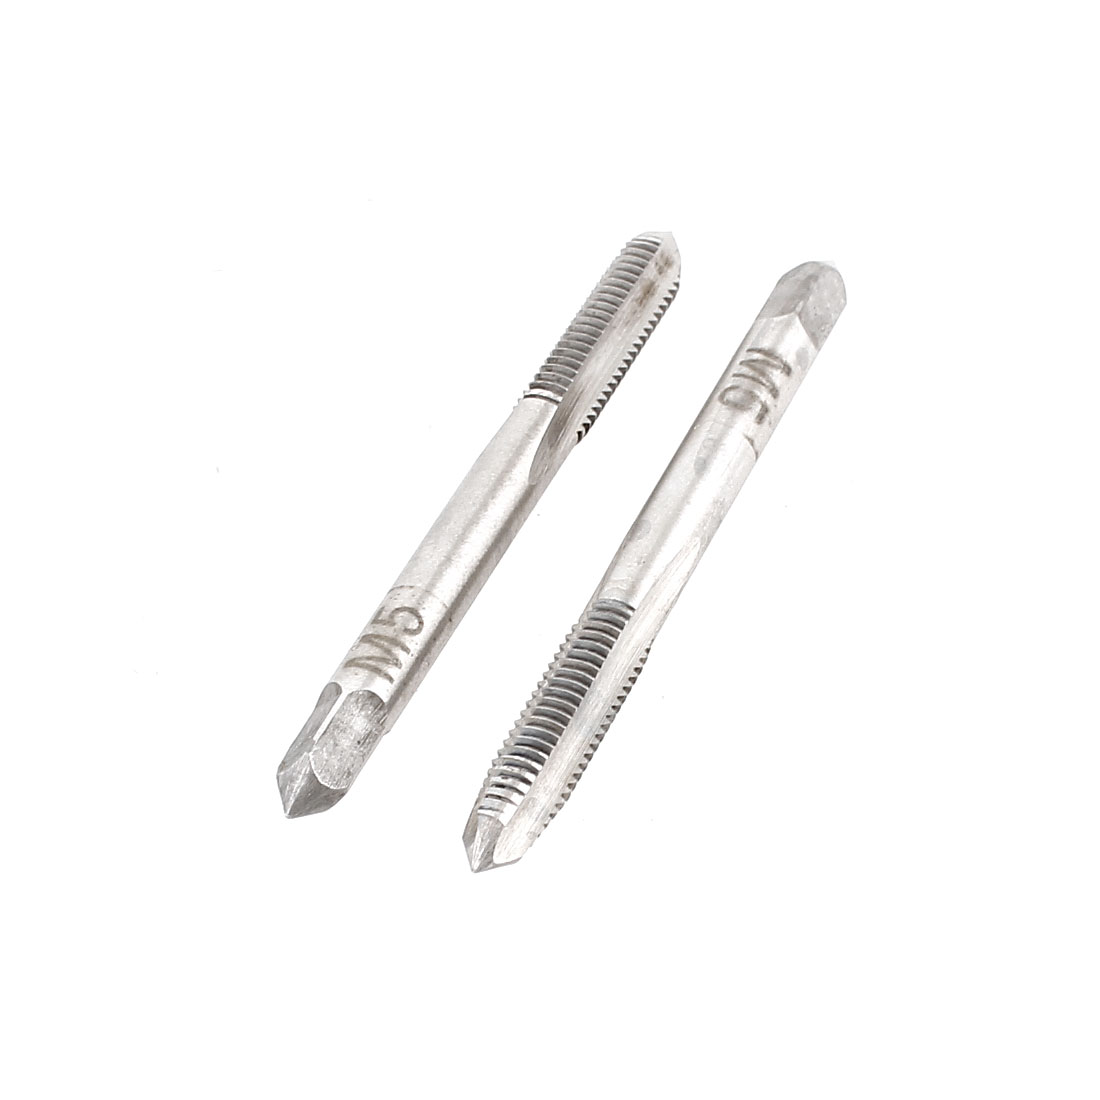 2 Pieces M5x20mm HSS 3 Flutes Hand Screw Thread Straight Metric Taps